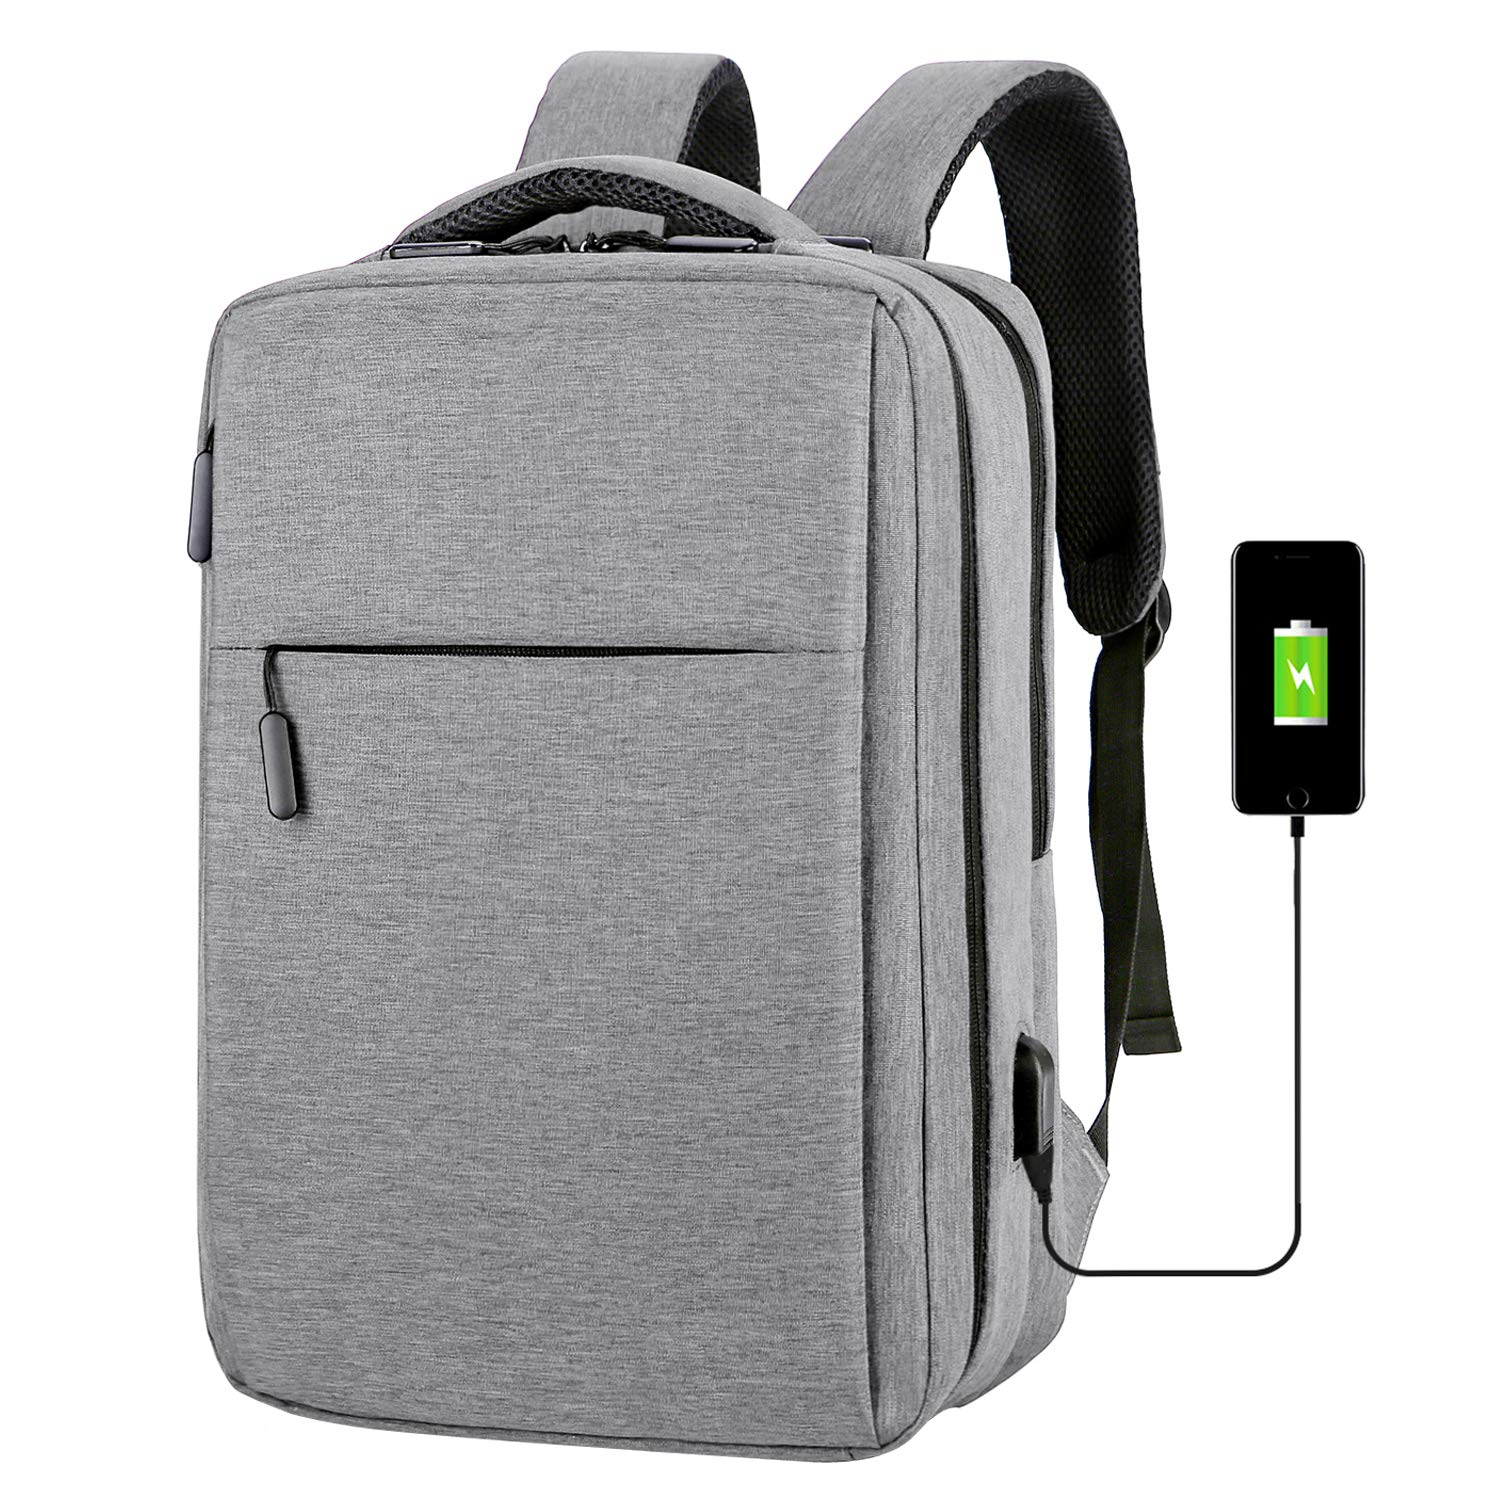 Business Laptop Backpack Anti-theft Laptop Bag Fits 14 15 15.6 Inches Notebook with USB Charging Port Business Travel Computer Bag Water Resistant School Bag College Bookbag for Women & Men, Gray